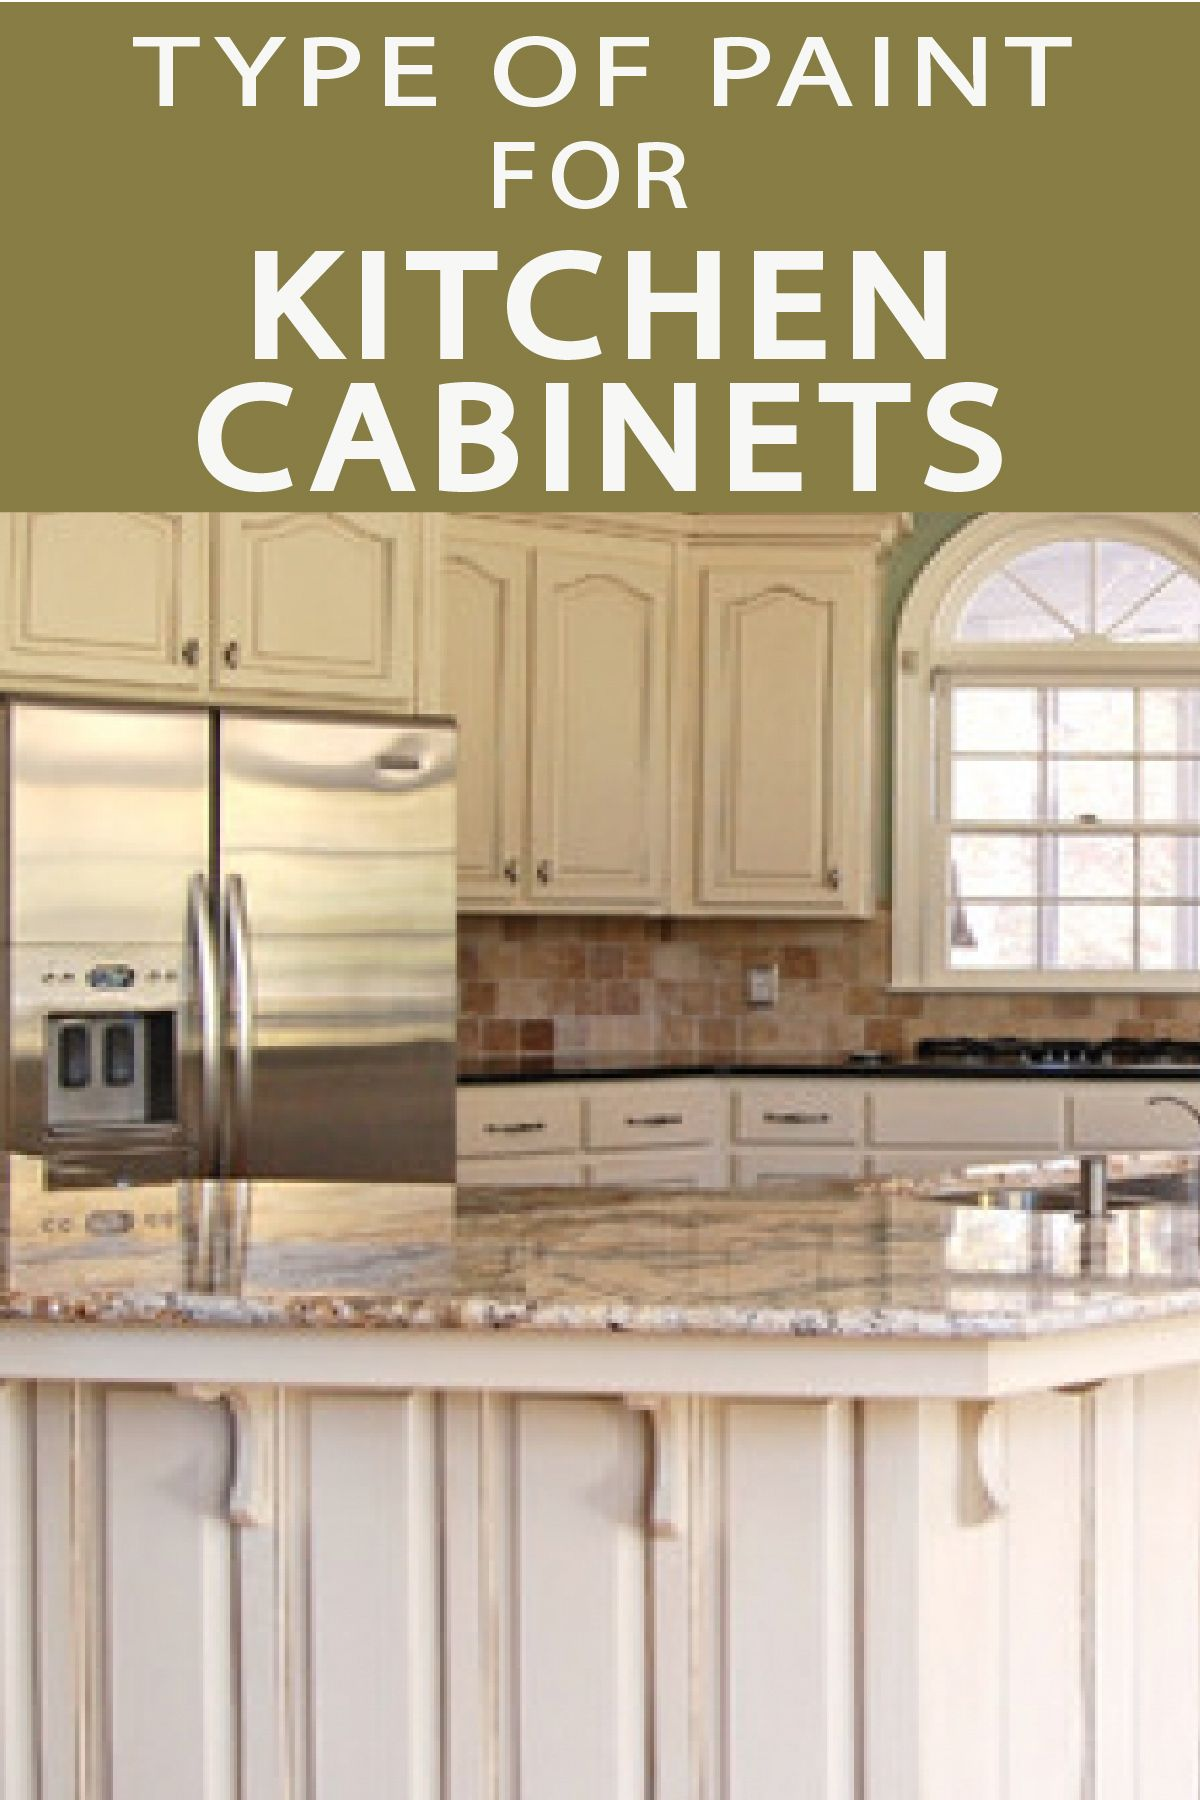 What Kind Of Paint Are Best For Painting Kitchen Cabinets Learn How To Do Your Diy Project Like A Professional